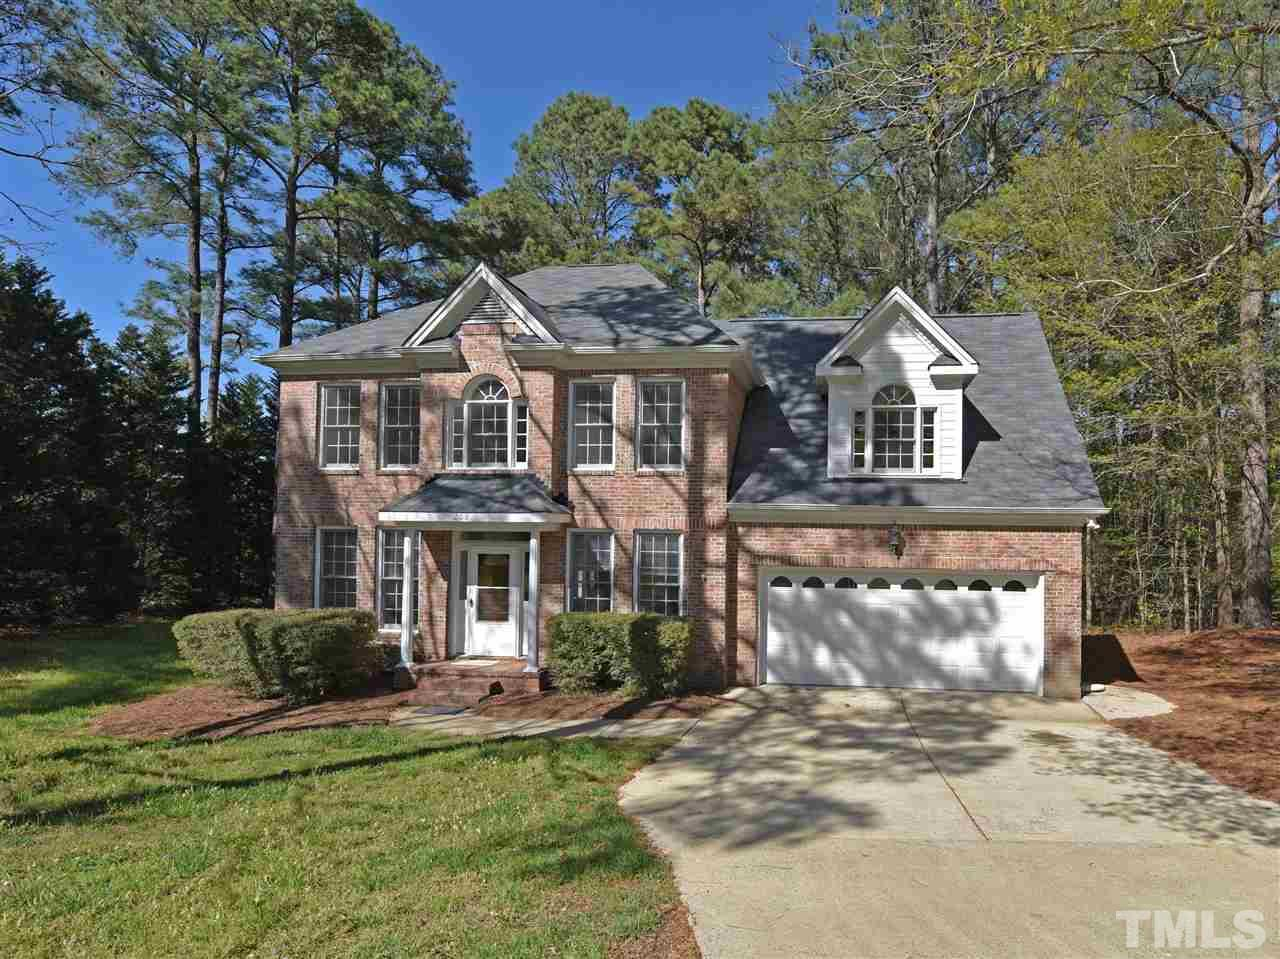 208 PRICEVIEW DRIVE, RALEIGH, NC 27603